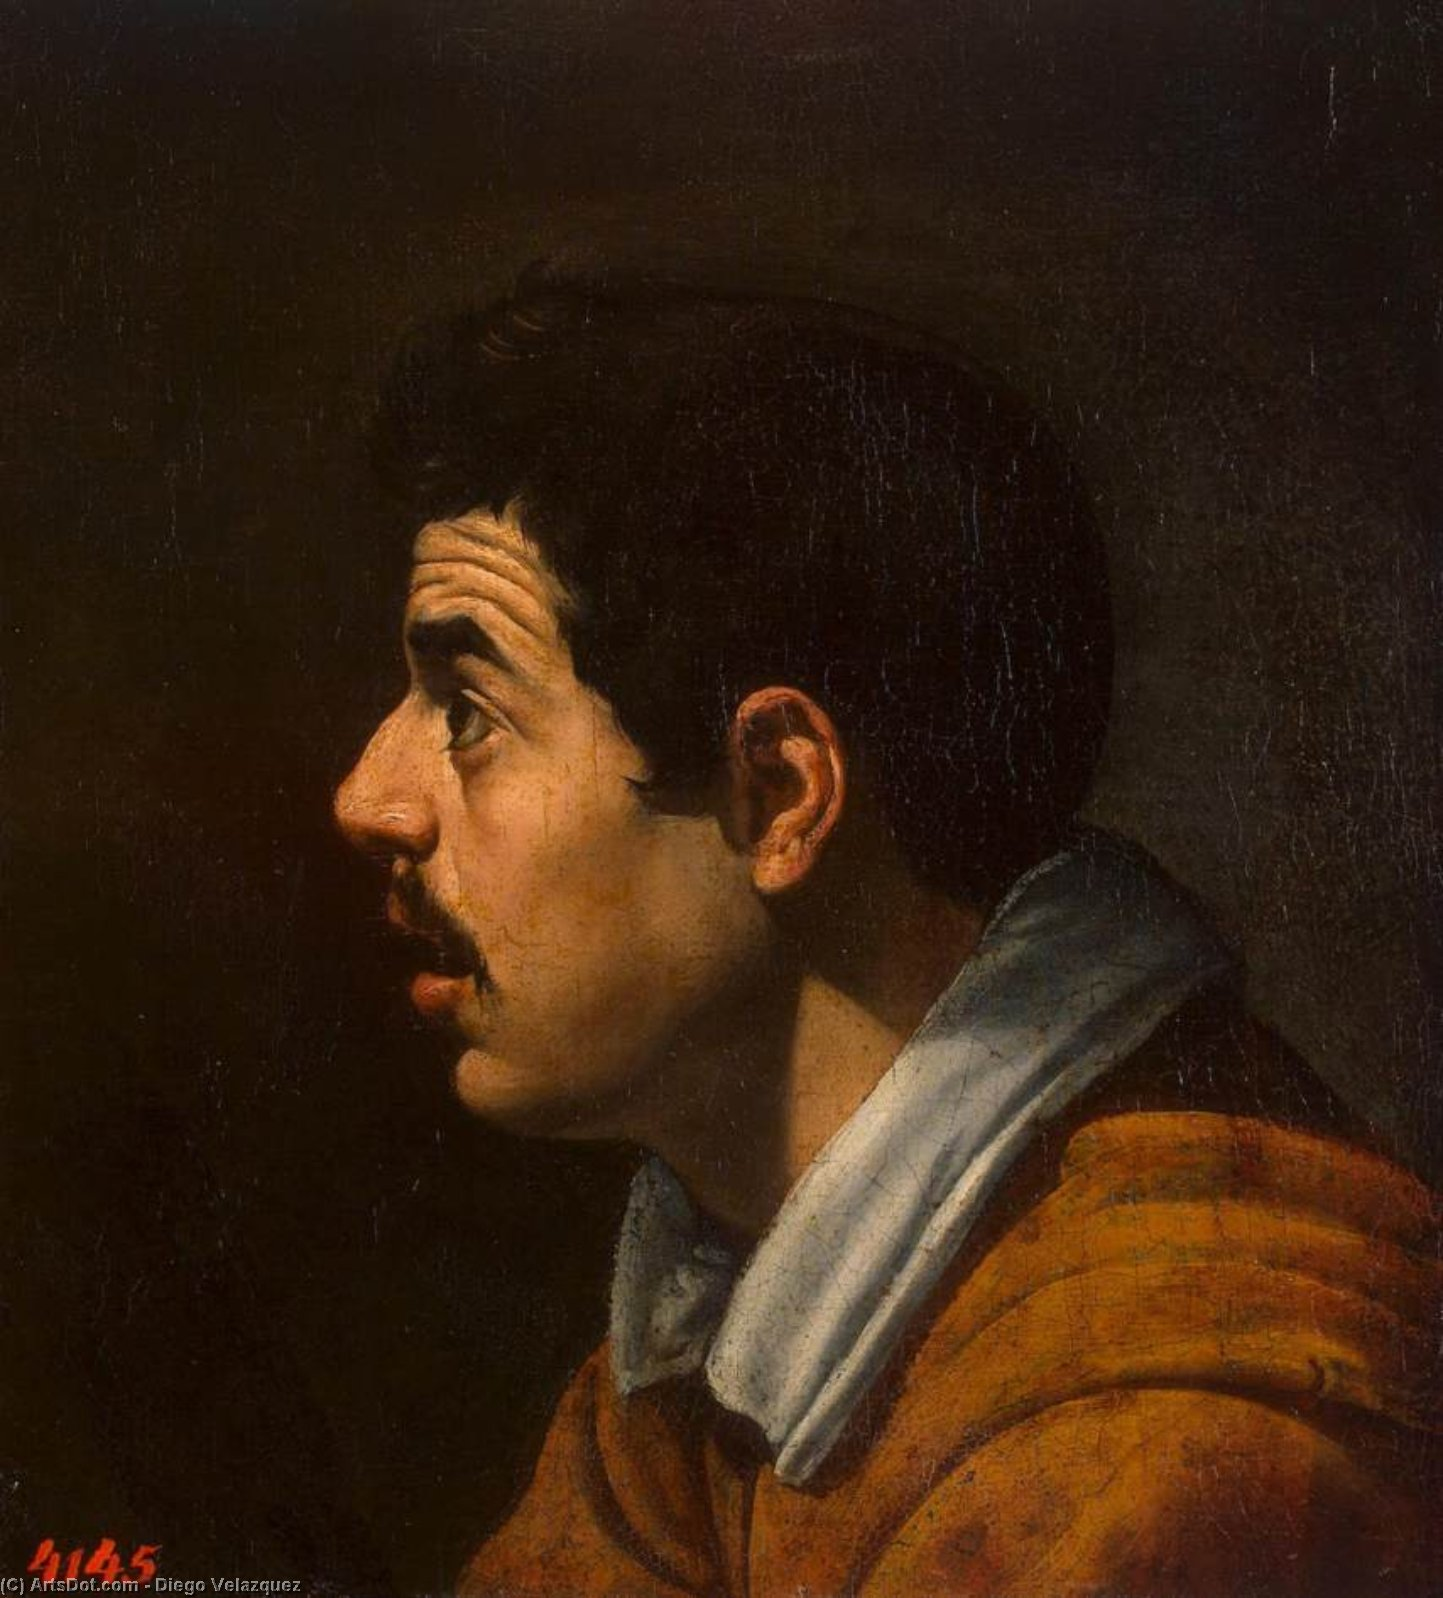 Head of a Man, Oil On Canvas by Diego Velazquez (1599-1660, Spain)